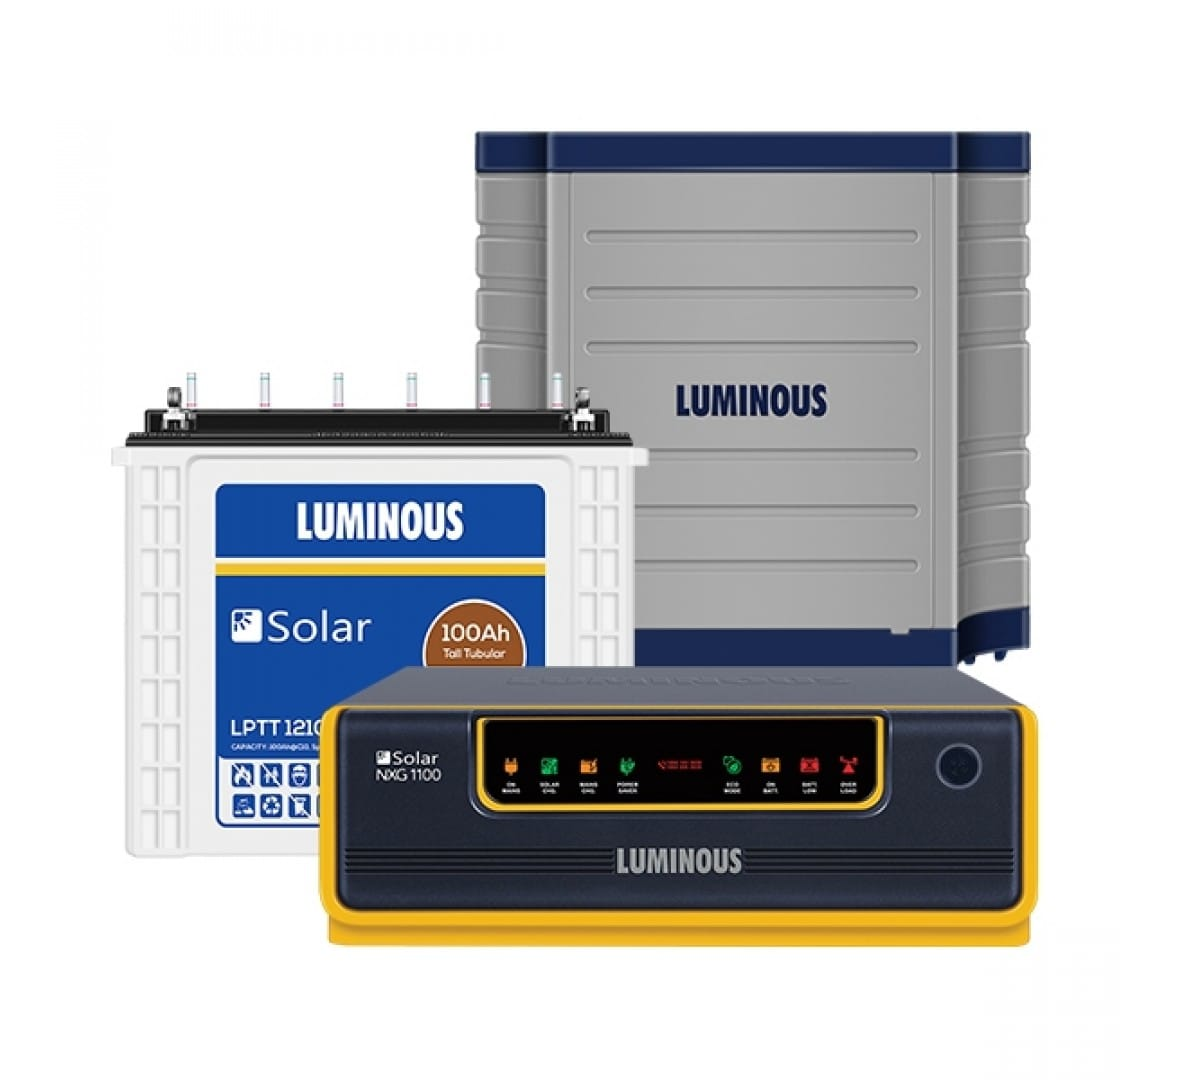 LUMINOUS SOLAR NXG1100 UPS + LPTT12150H 150AH + TROLLEY